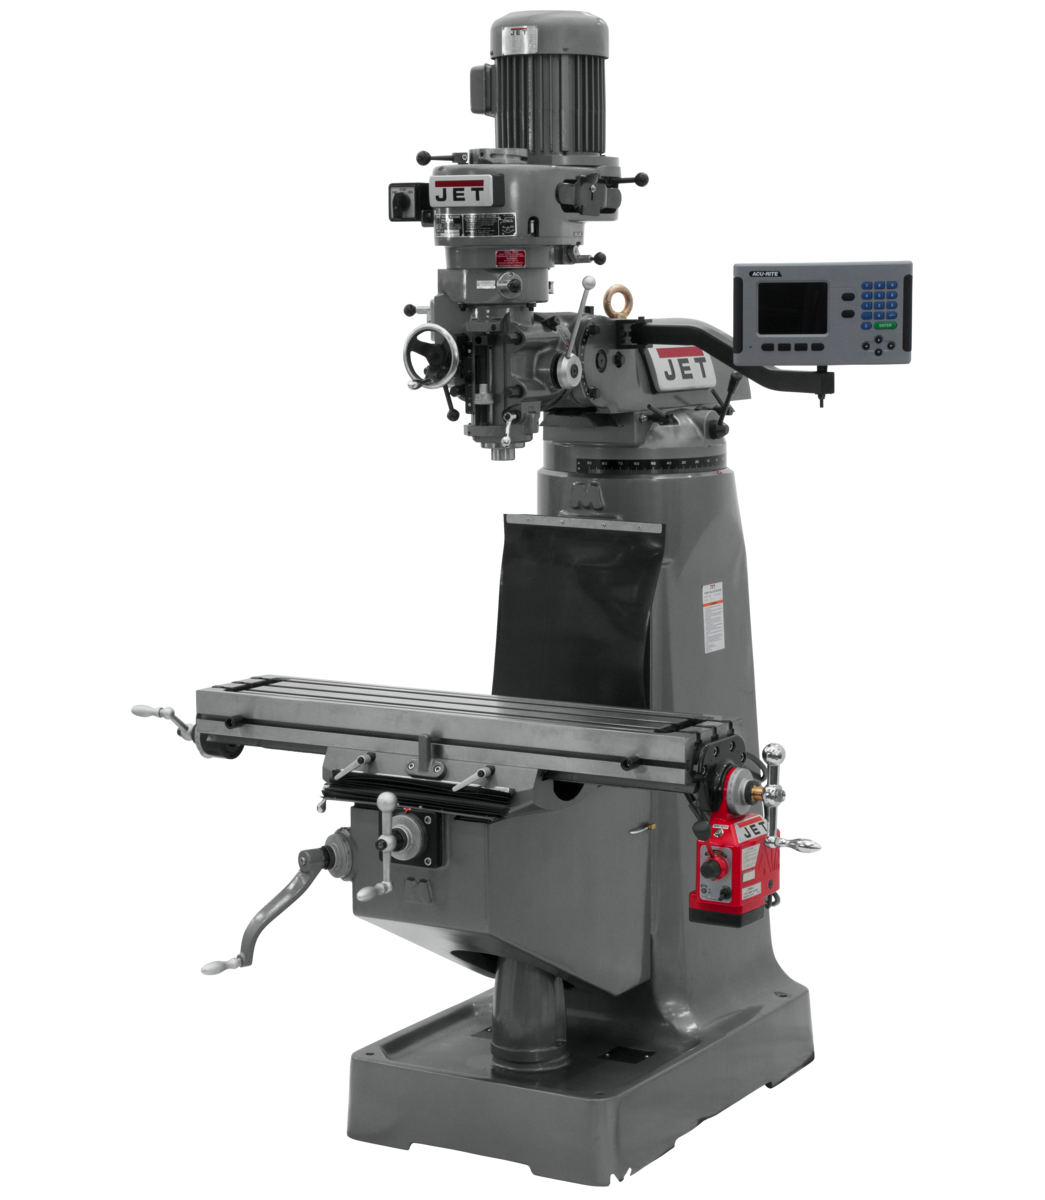 JTM-2 Mill With 3-Axis ACU-RITE 203 DRO (Quill) With X-Axis Powerfeed